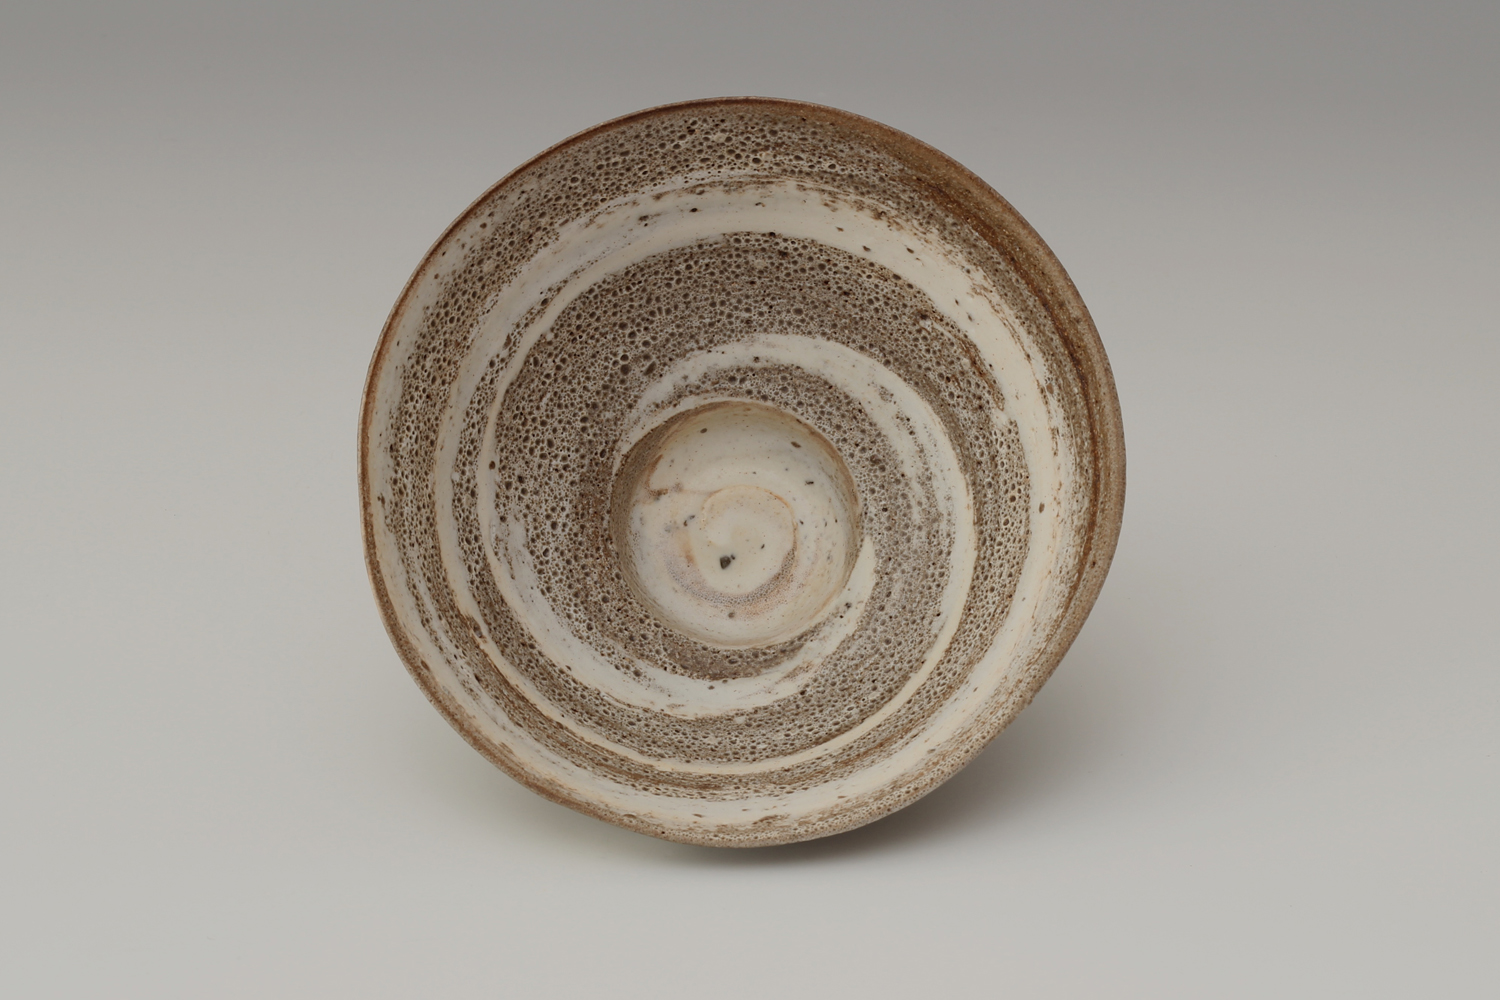 Peter Wills Ceramic Agate-ware Bowl 173